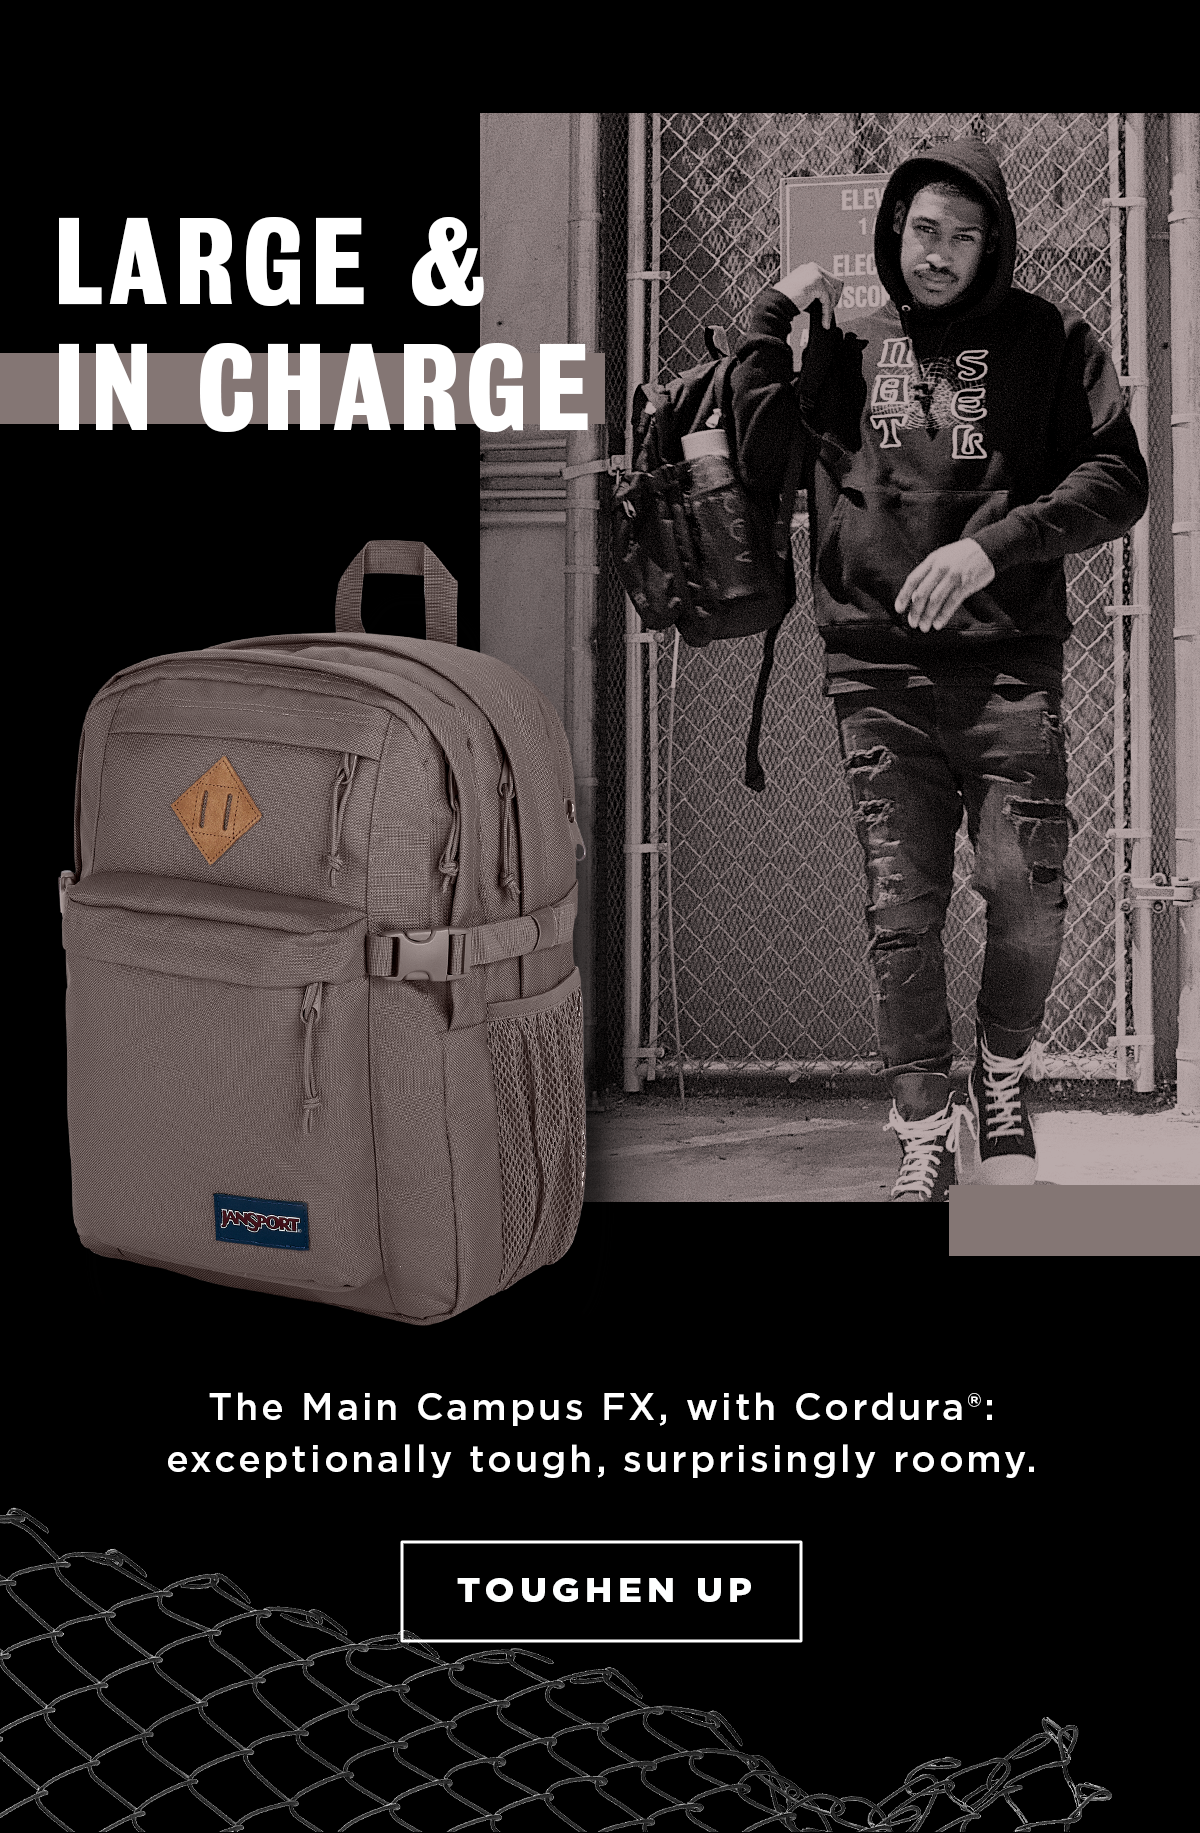 LARGE & IN CHARGE The Main Campus FX, with Cordura®: exceptionally tough, surprisingly roomy. TOUGHEN UP